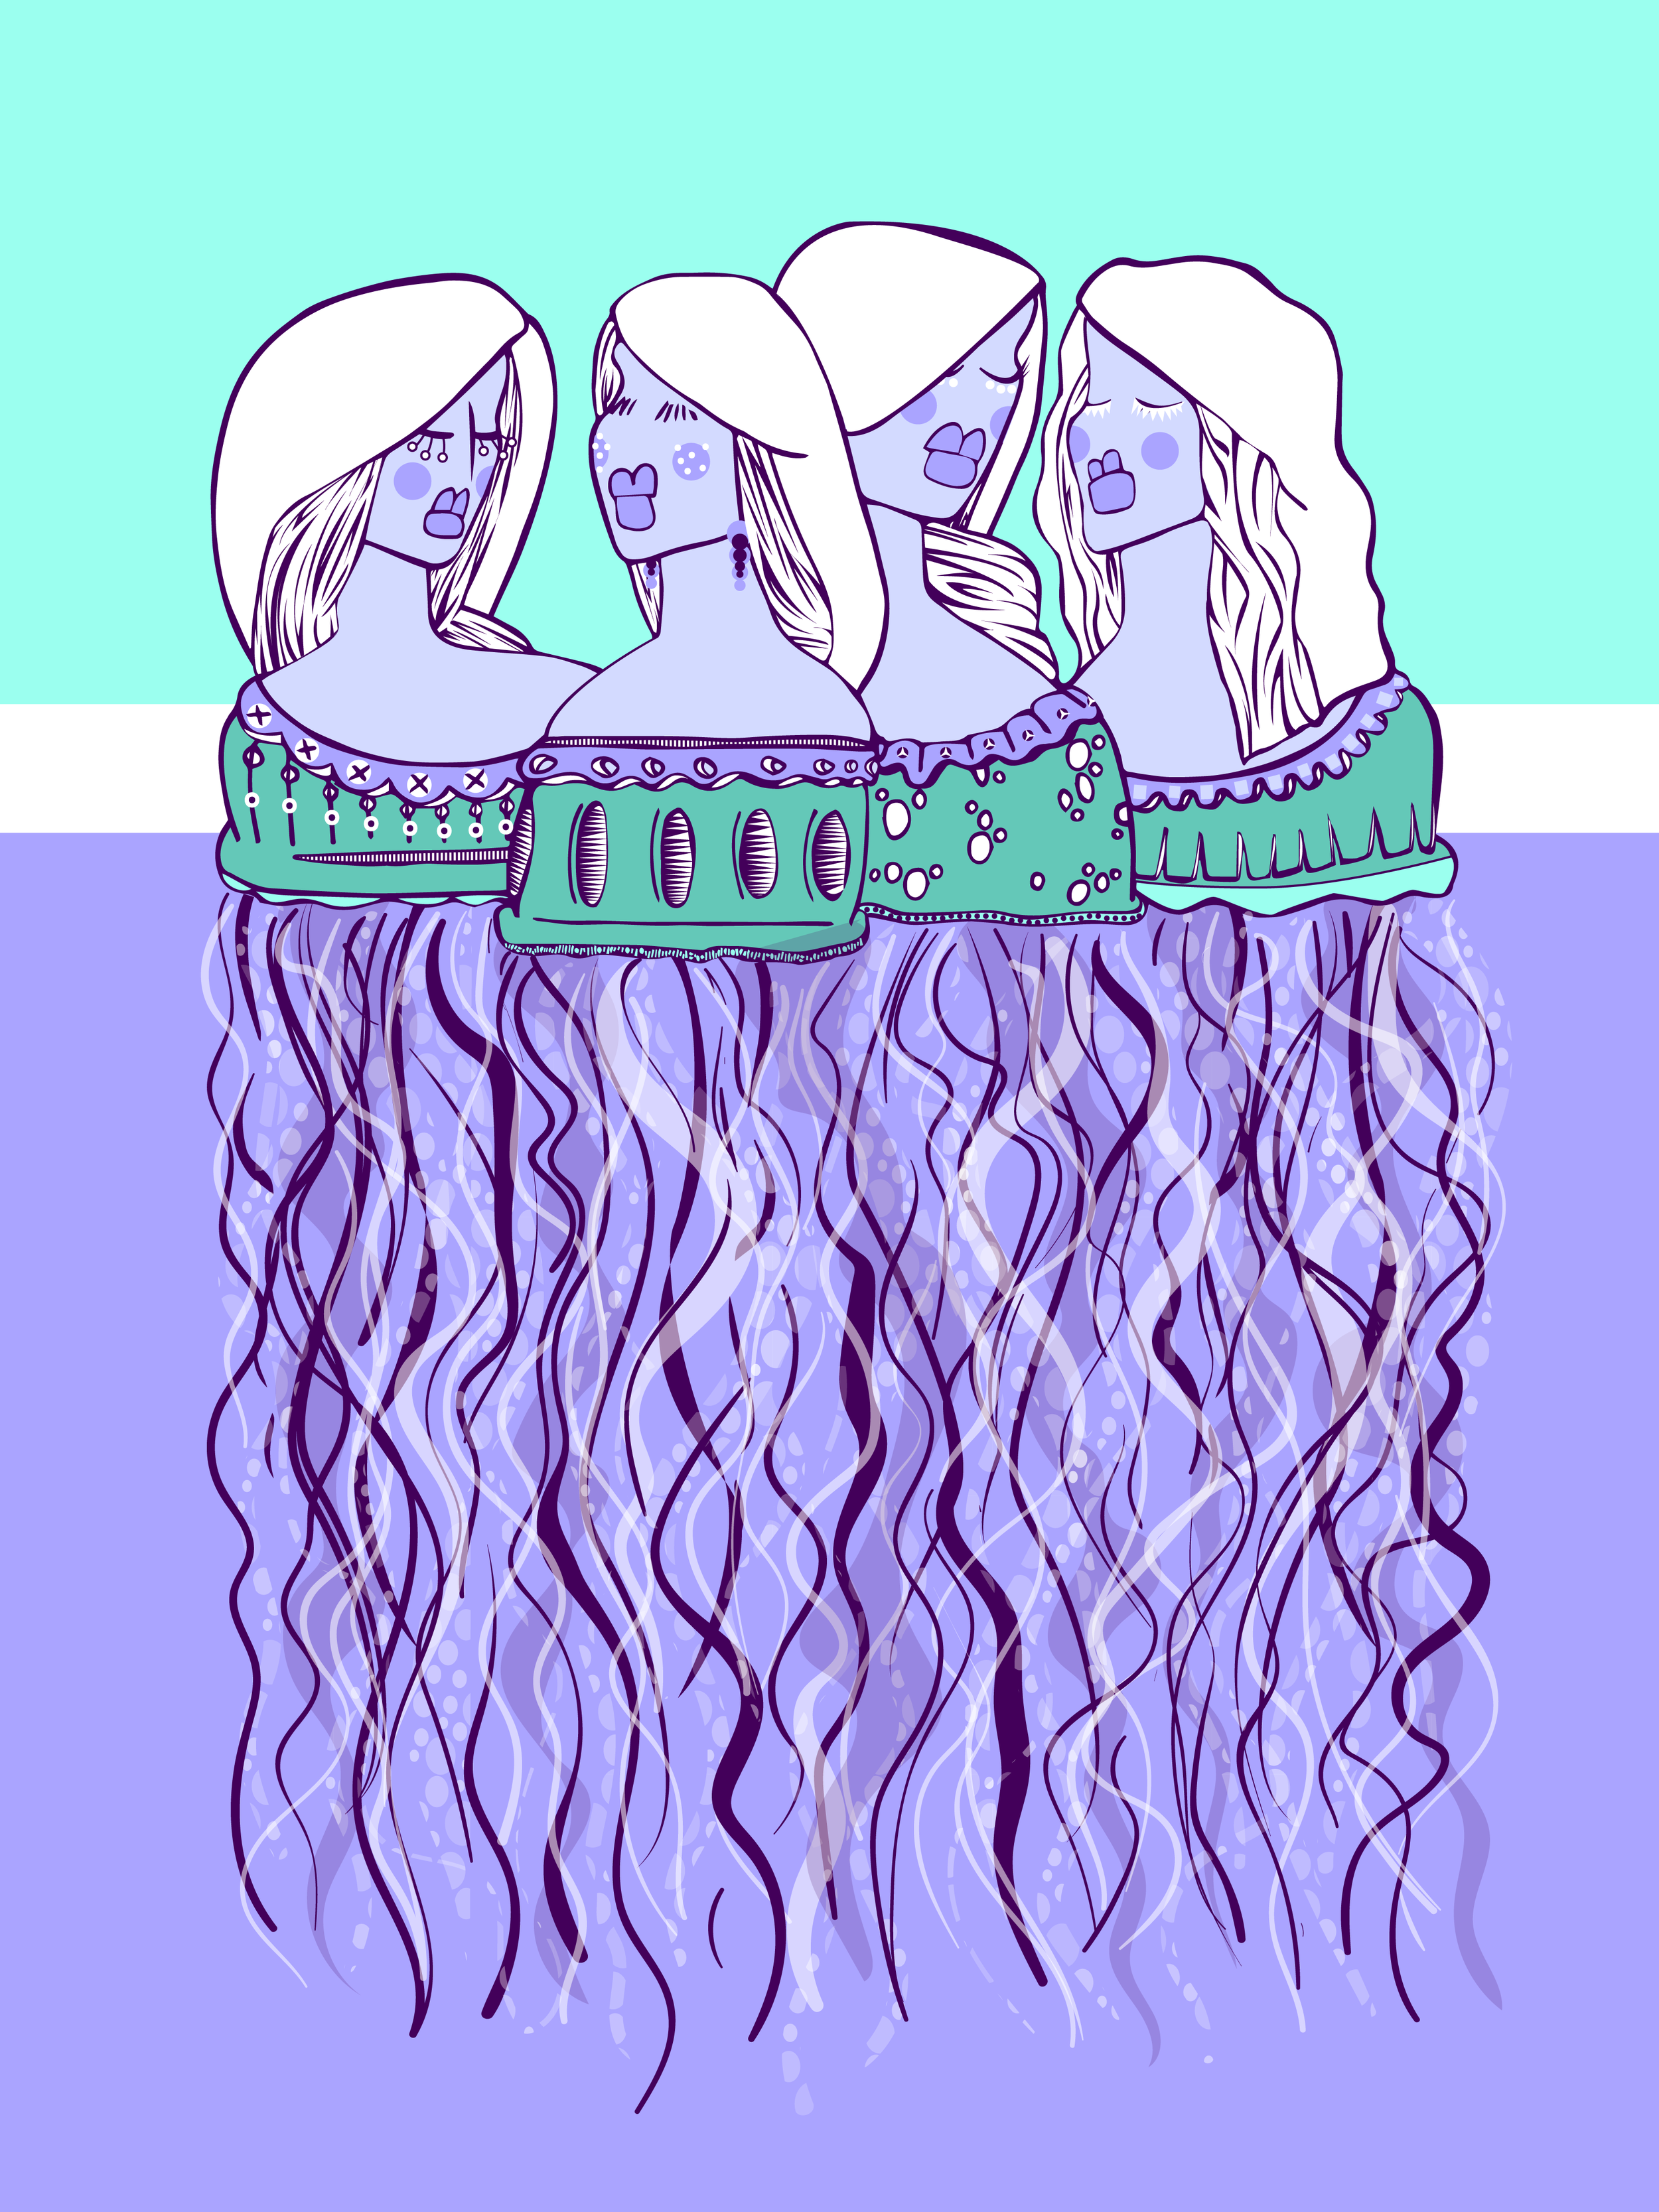 jellyladies-01.png